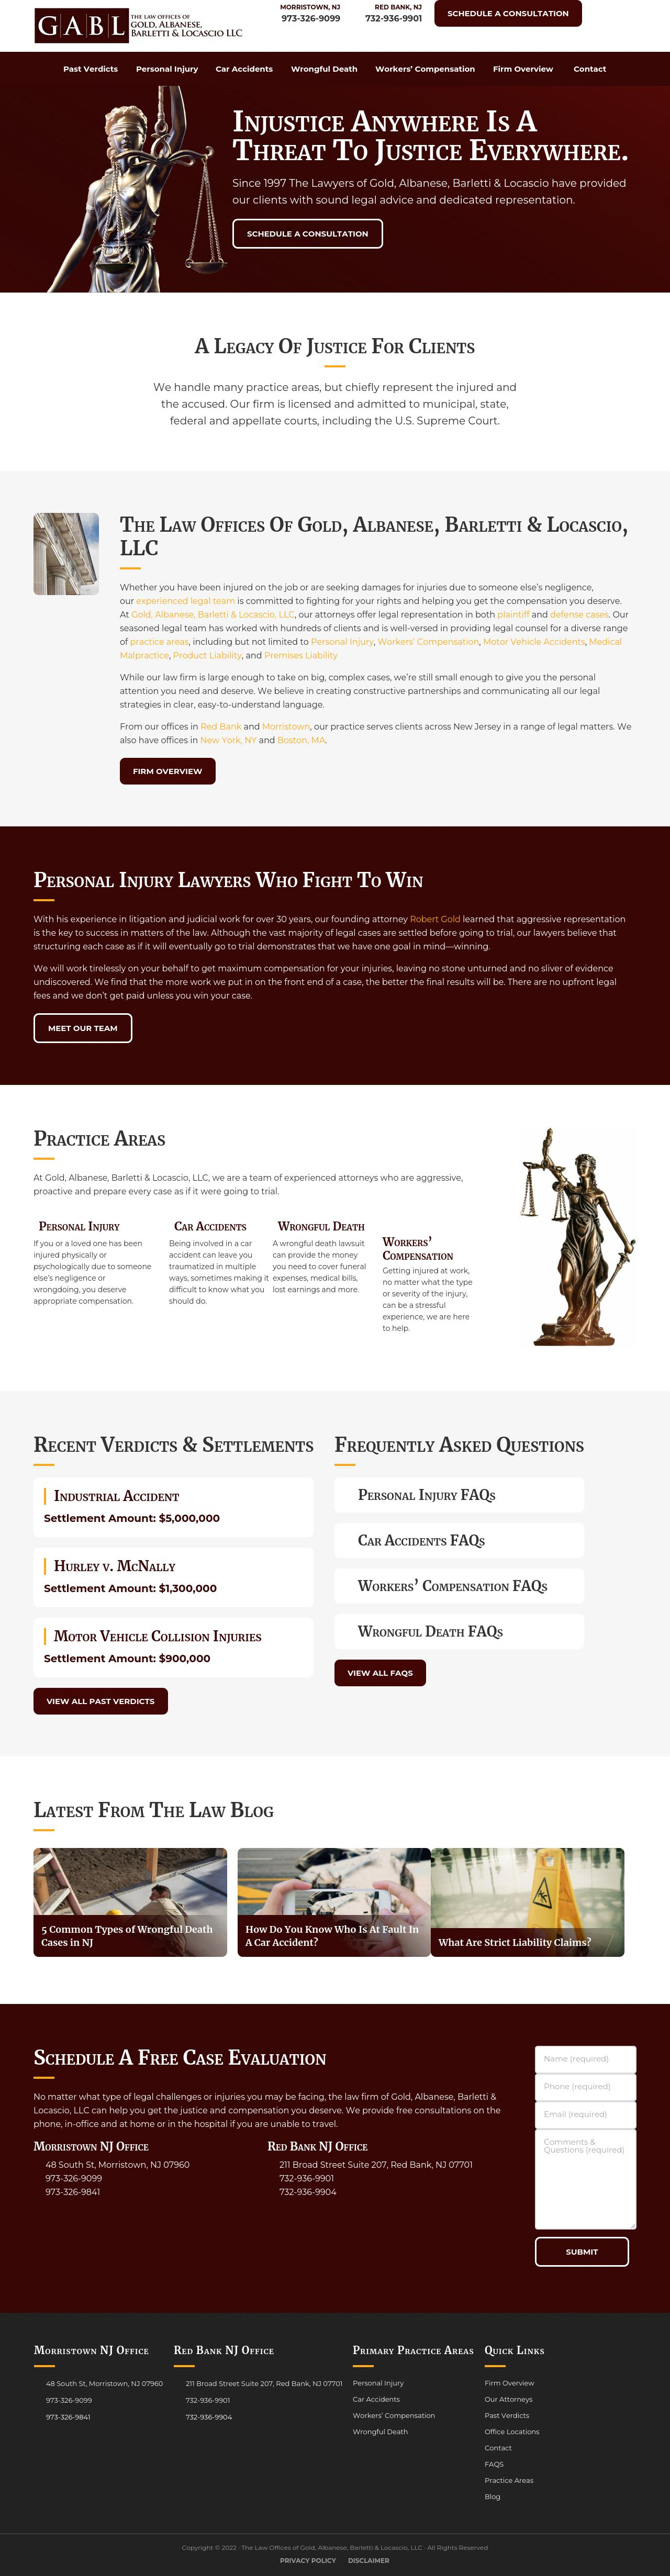 The Law Offices of Gold, Albanese & Barletti - Boston MA Lawyers